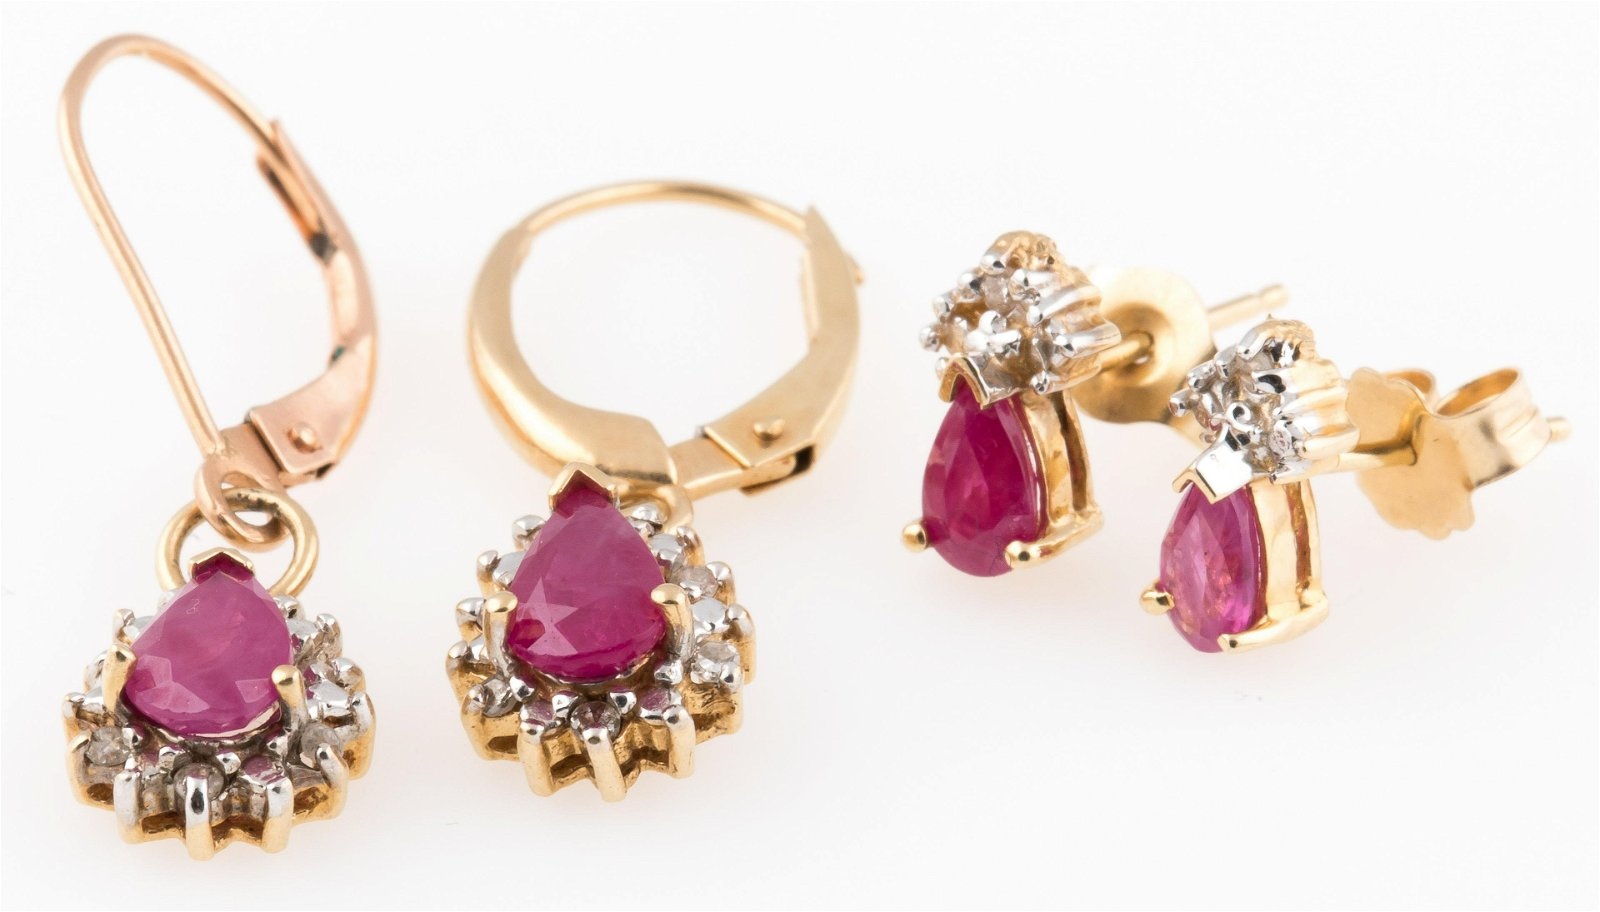 14K YELLOW GOLD & RUBY EARRINGS LOT OF 2 PAIRS